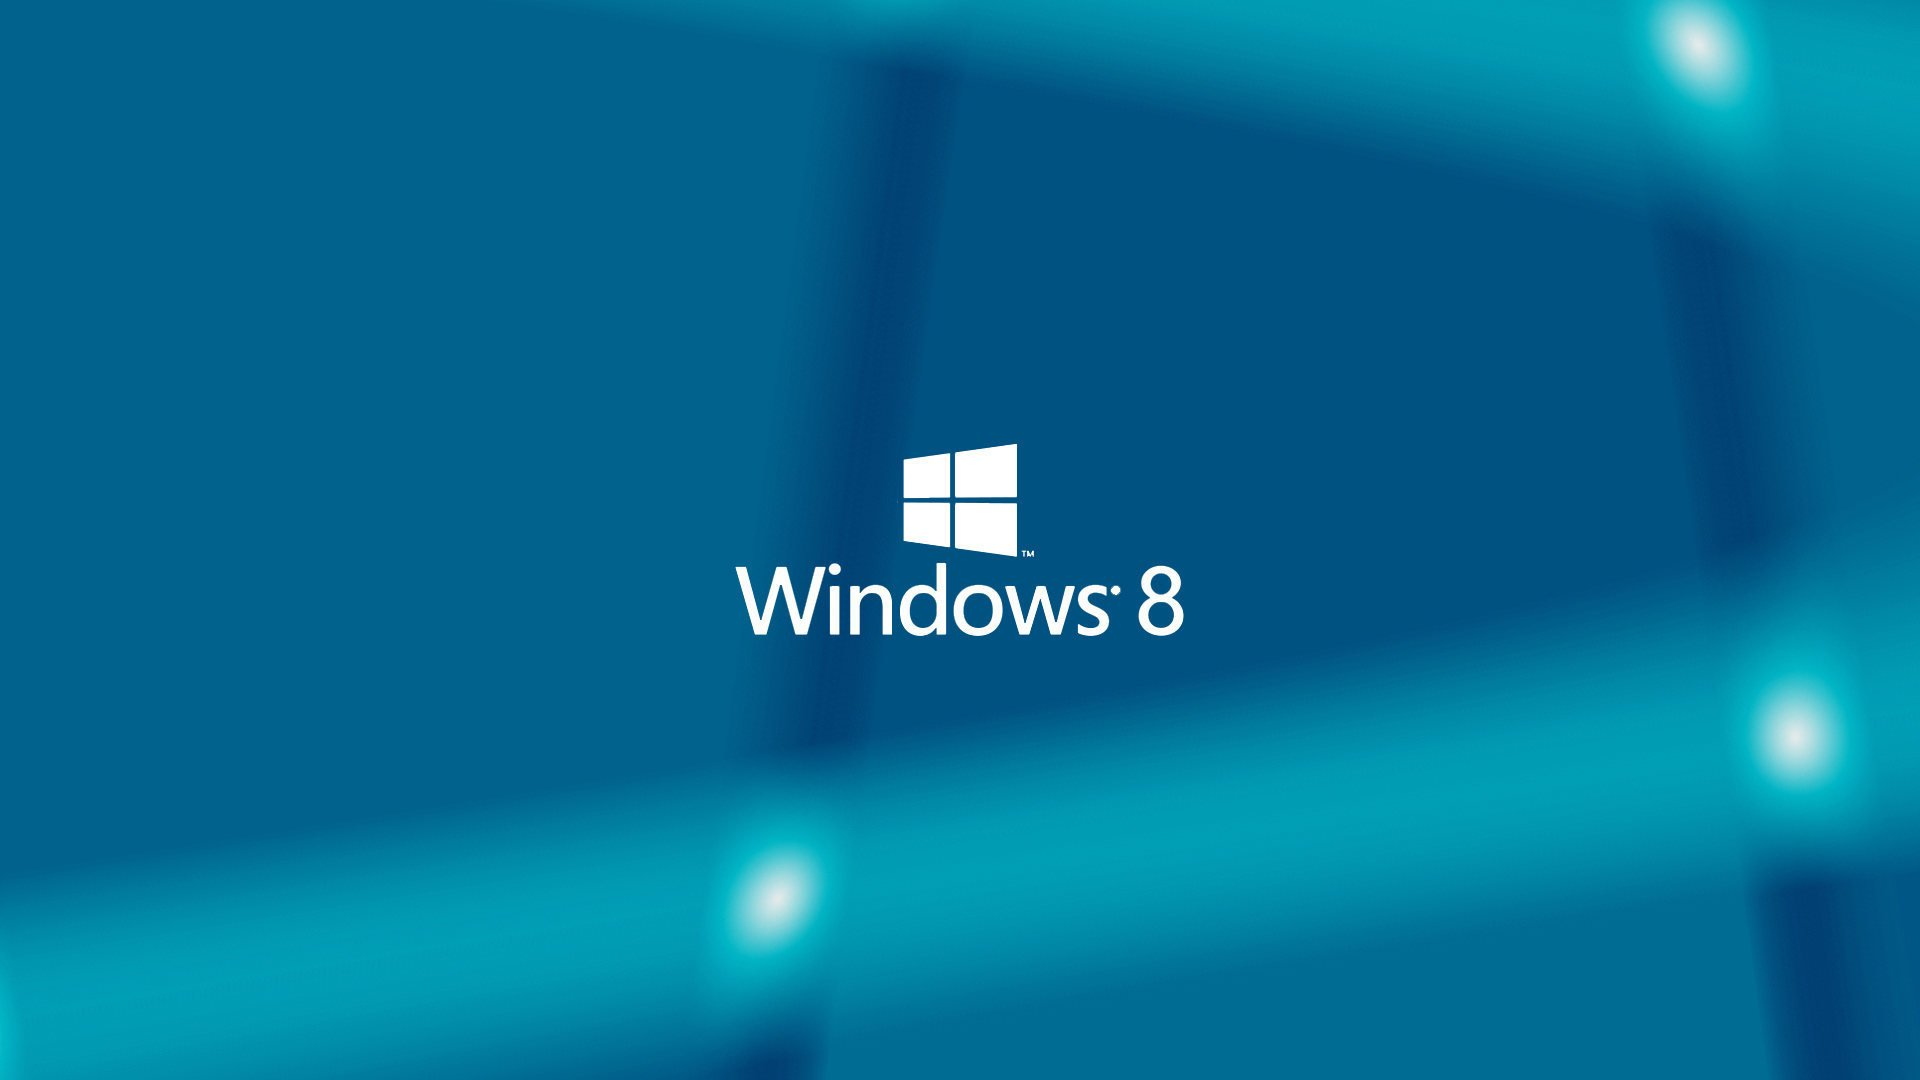 Windows 8 background images - Free Microsoft Desktop Backgrounds 1080p